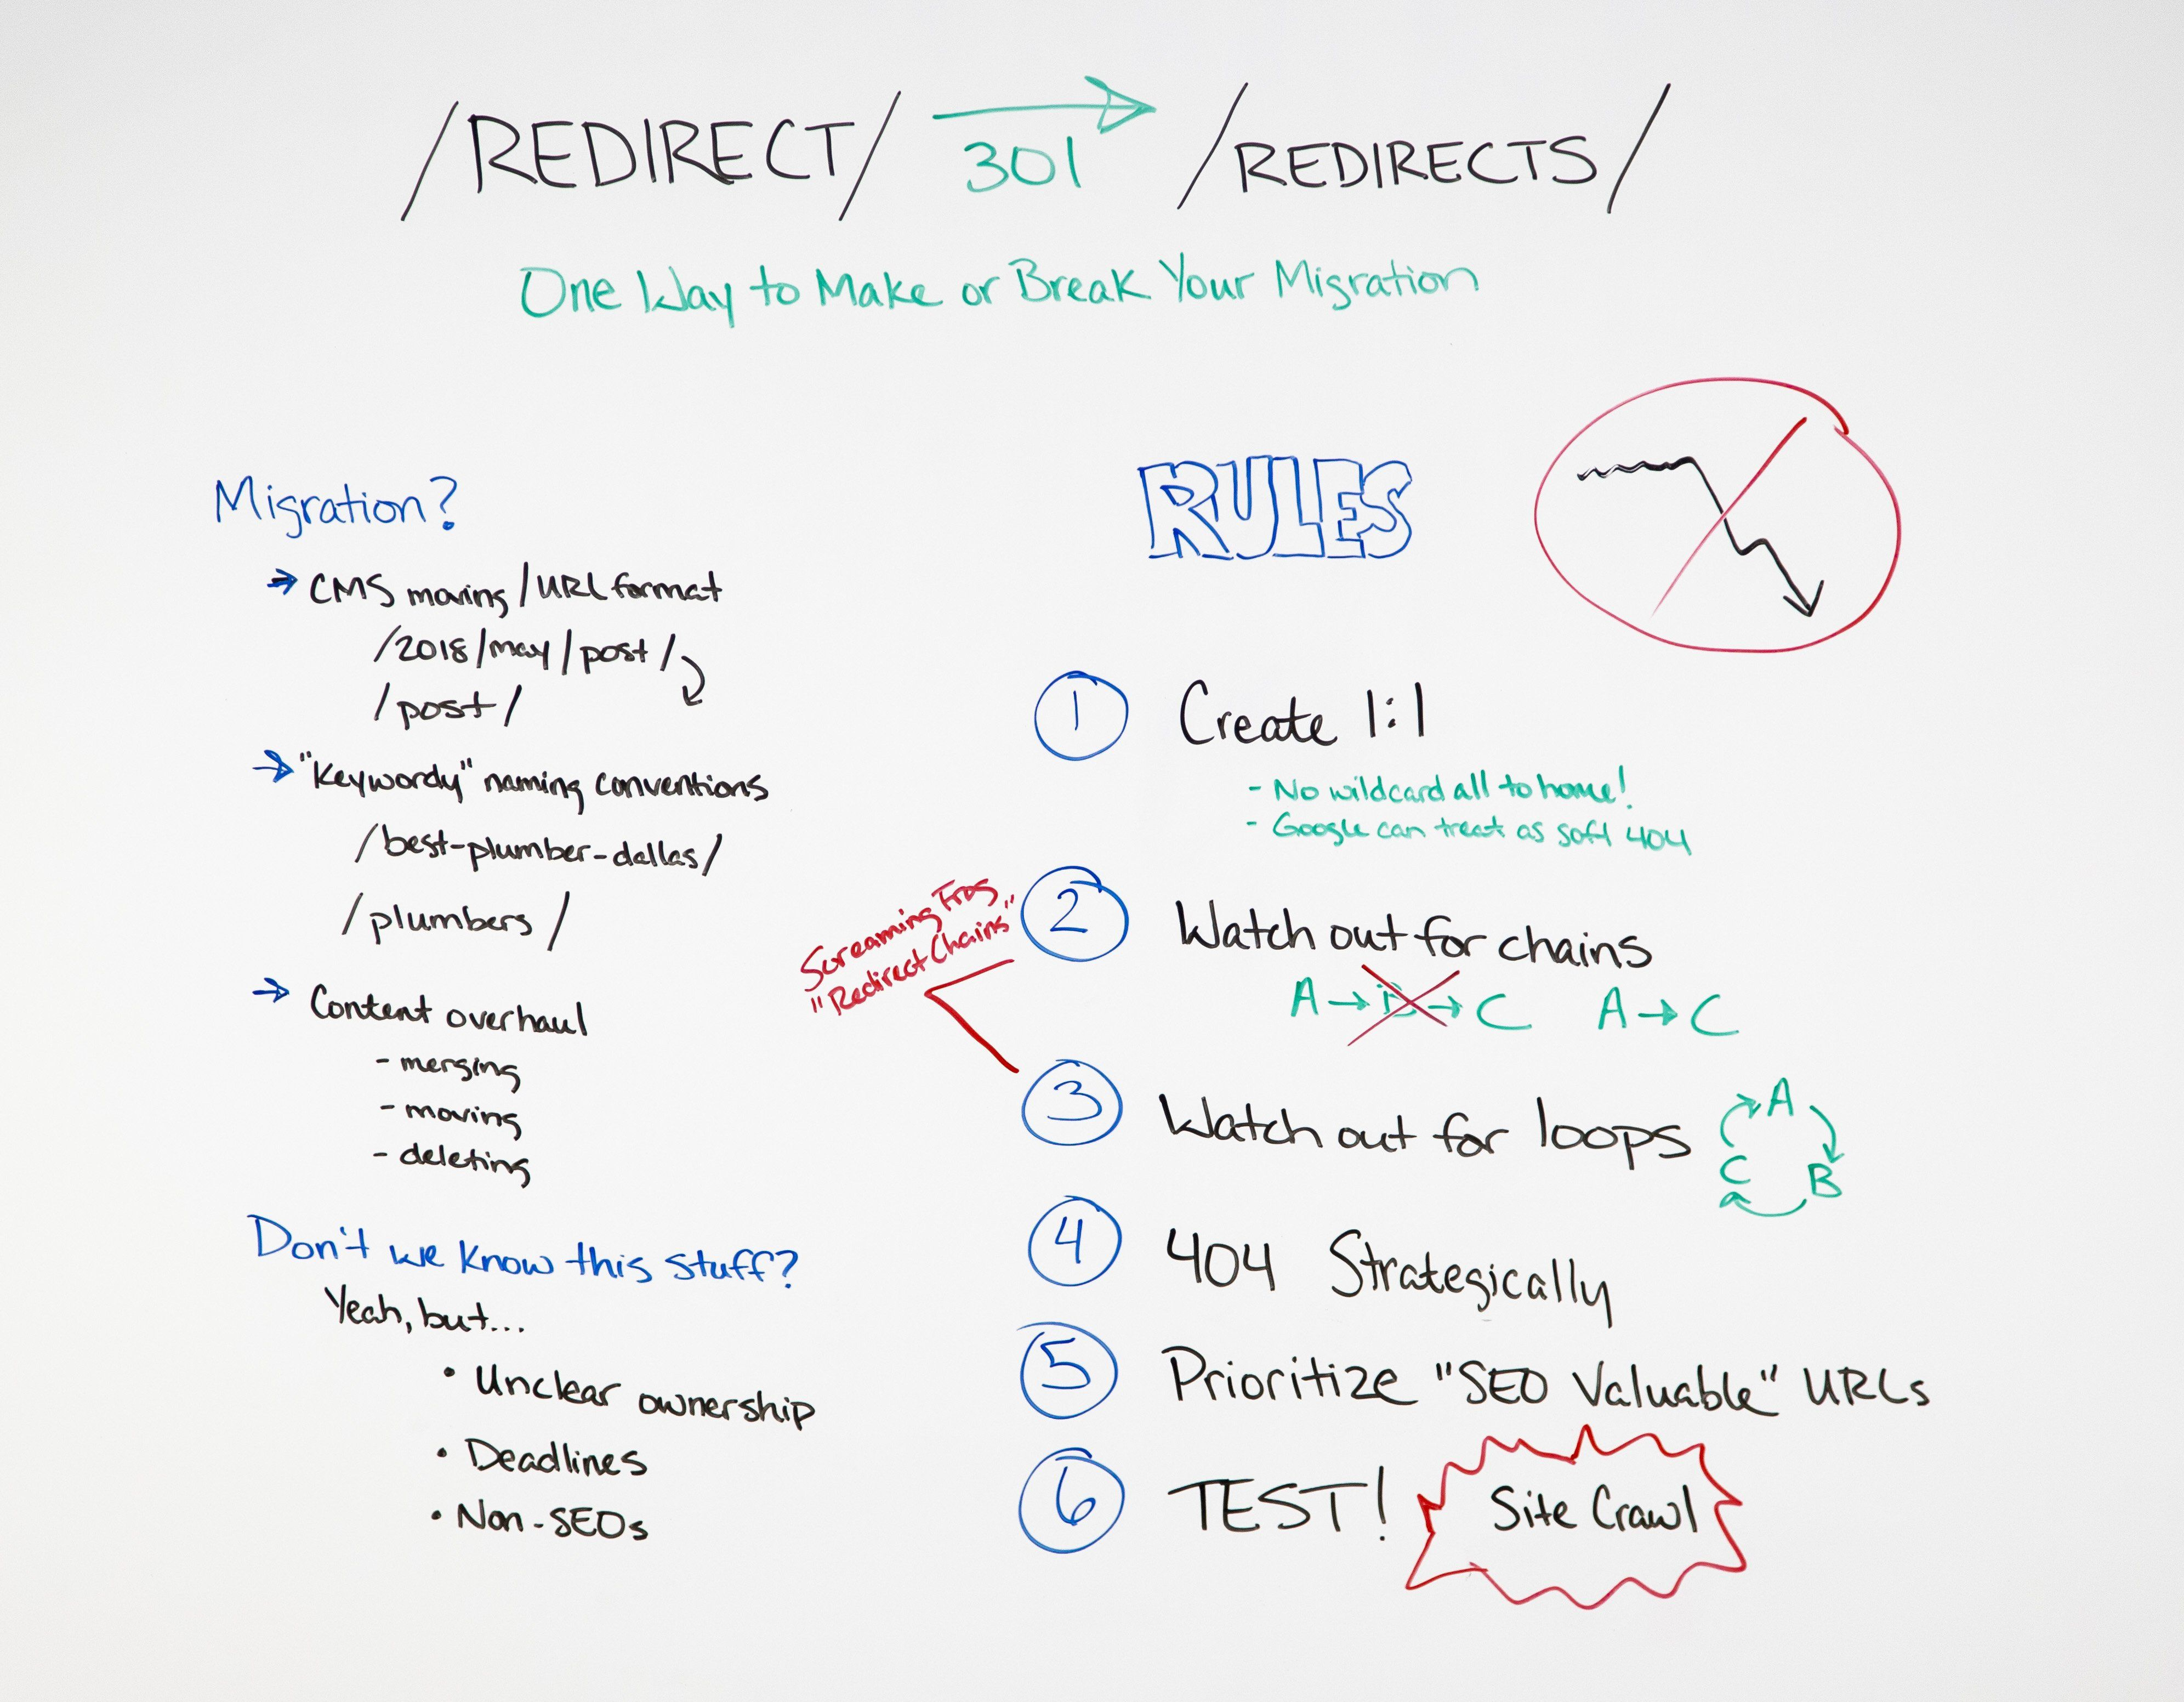 Redirects: One Way to Make or Break Your Site Migration